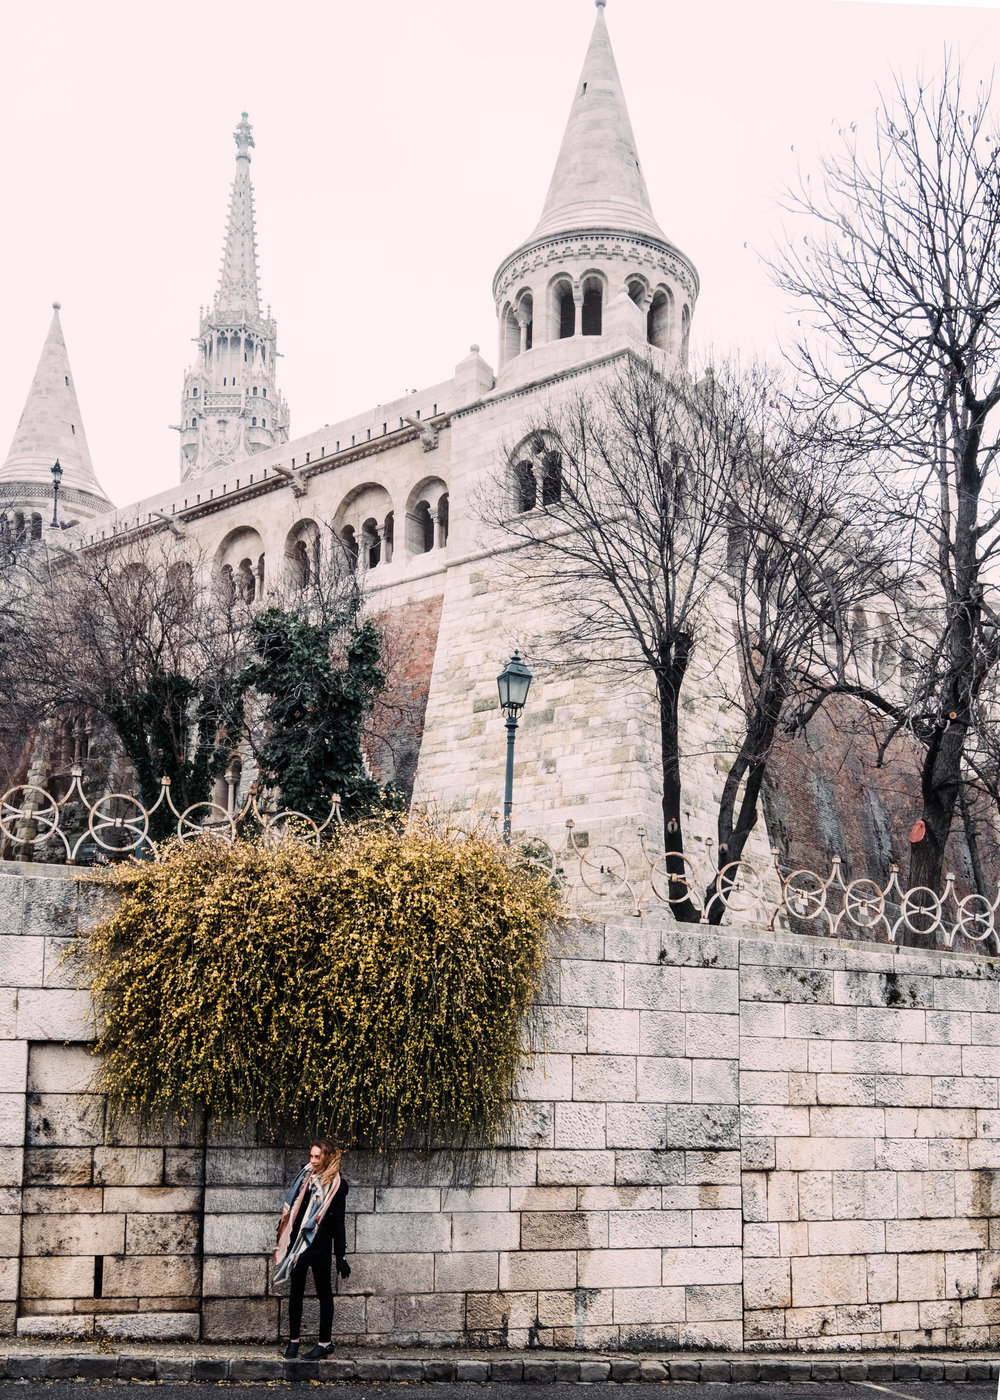 Streetside: Fisherman's Bastion